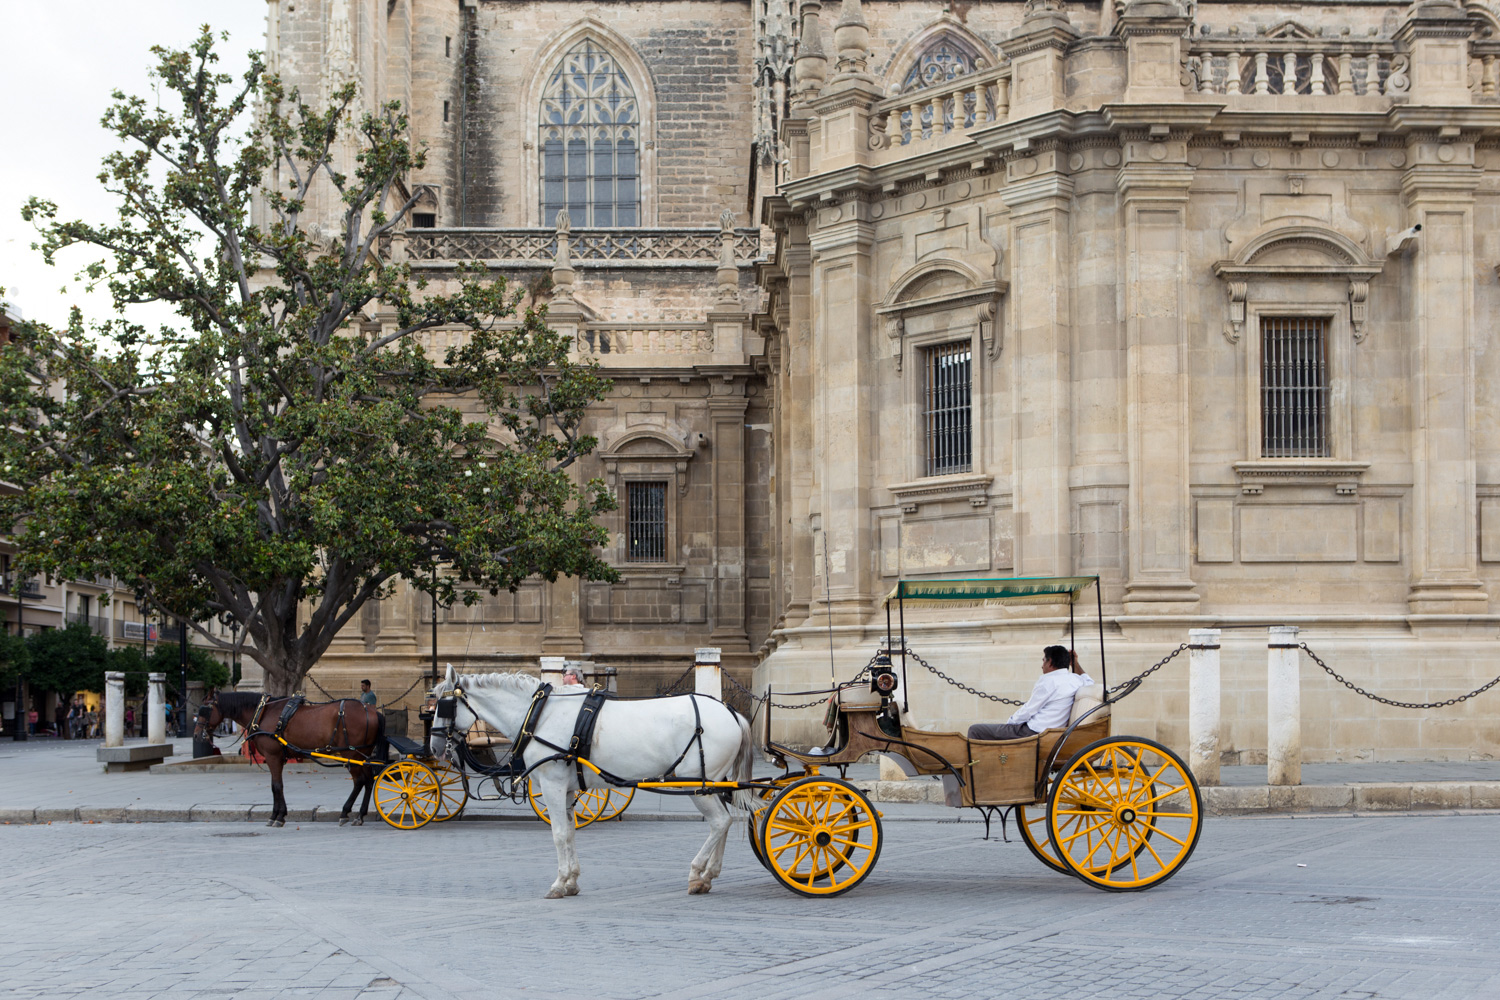 An old-fashioned carriage ride- one of the ways to take in the sights of historic Seville